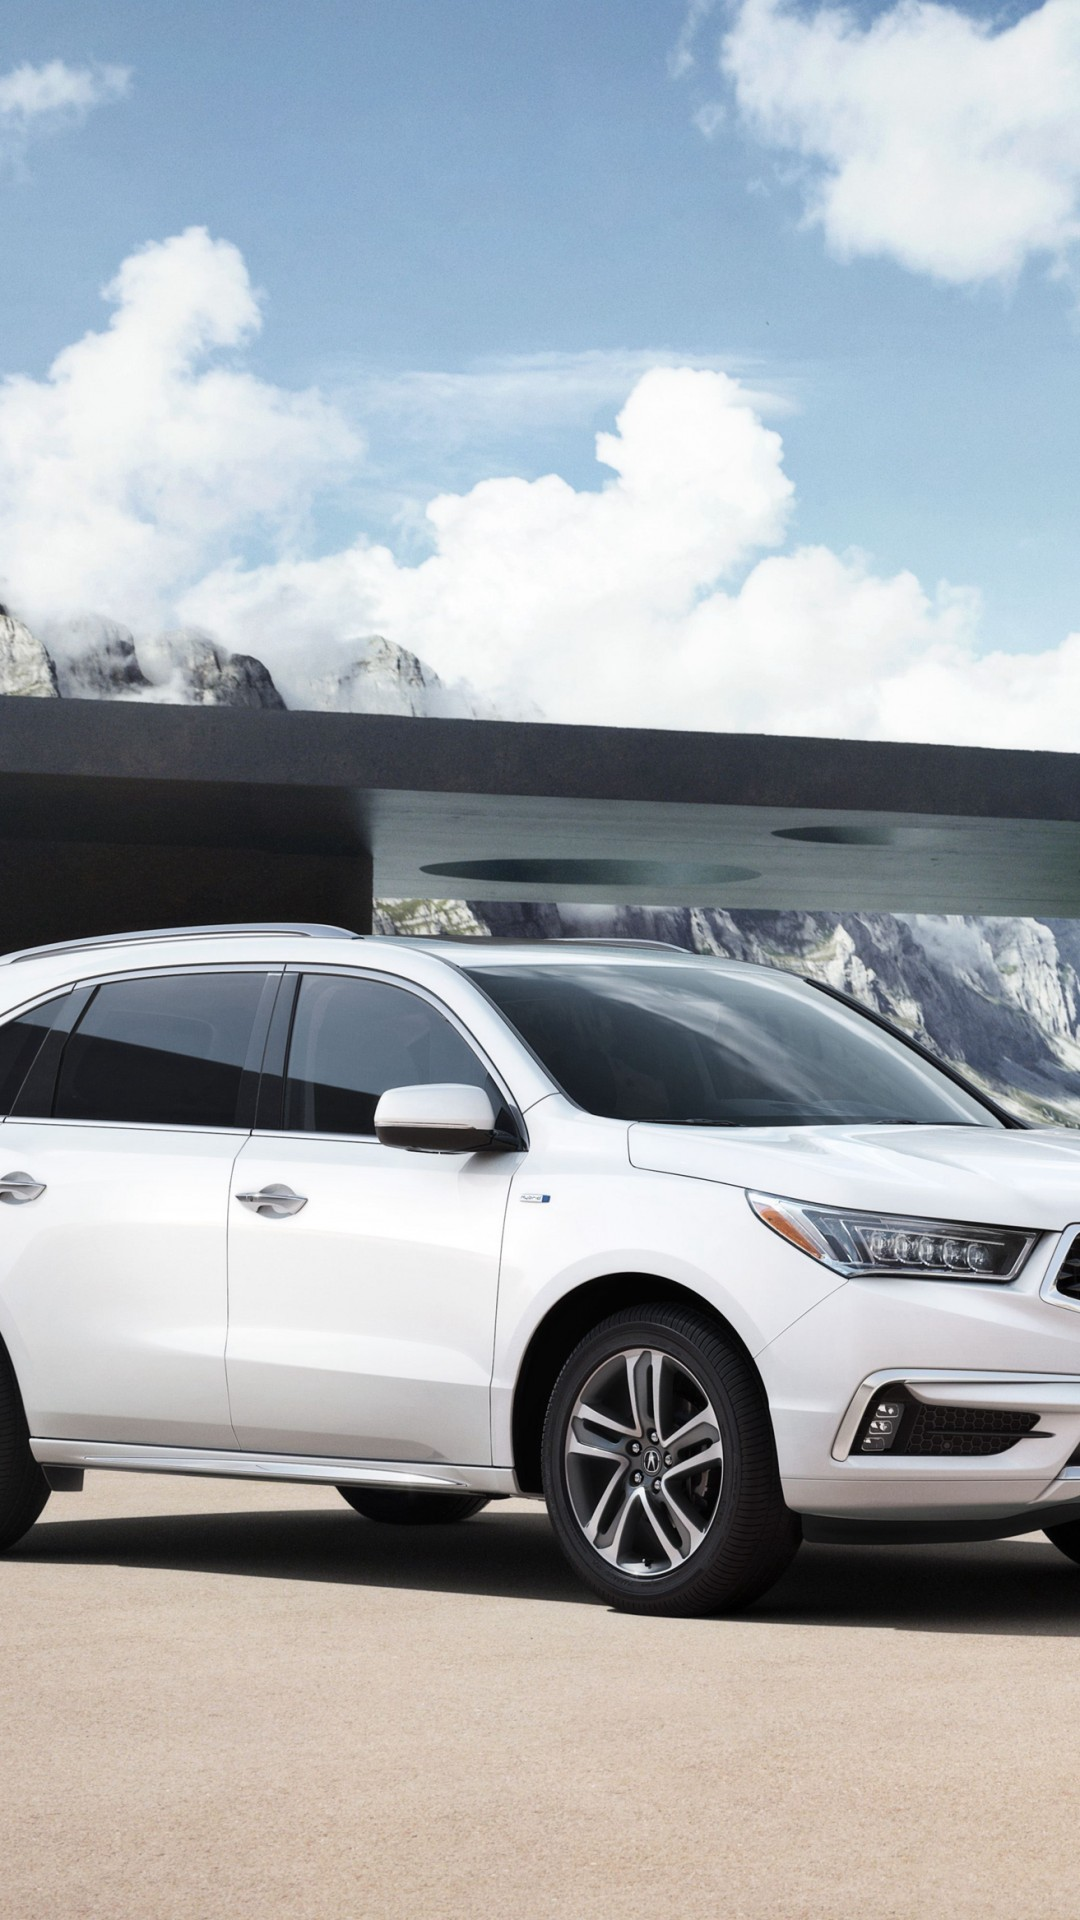 Wallpaper Acura Mdx Nyias 2016 Hybrid Crossover White